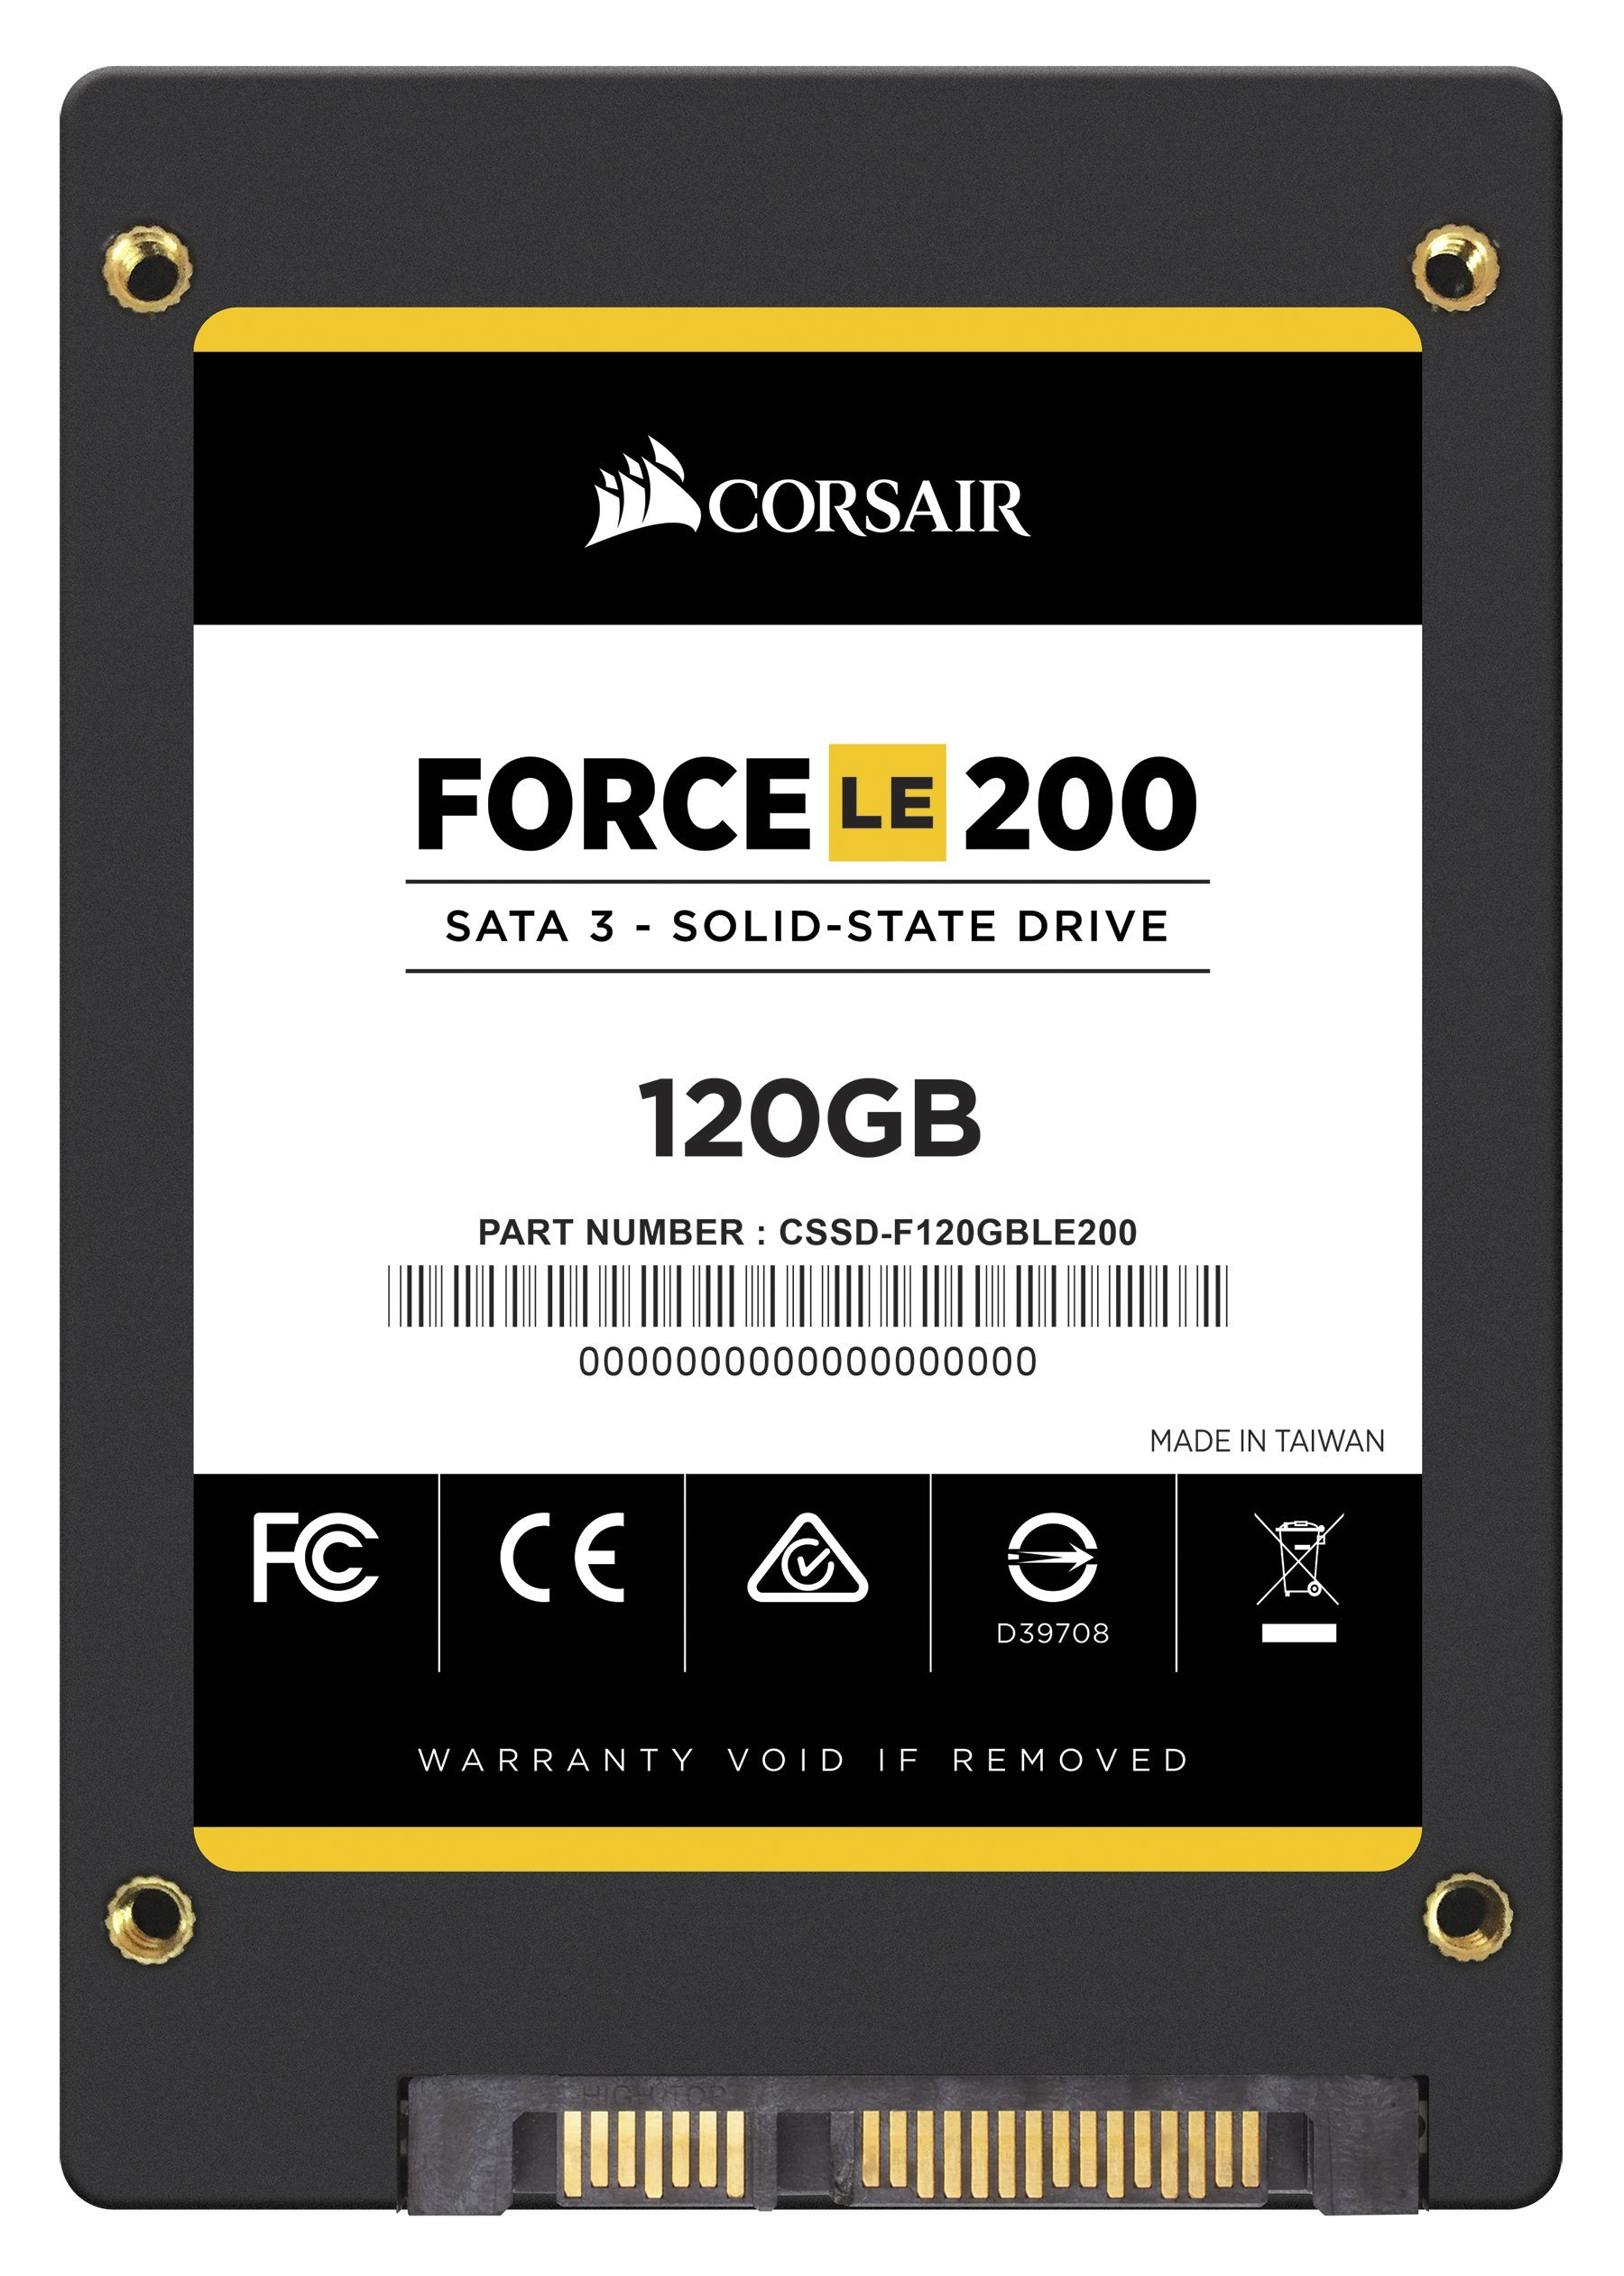 Corsair Memory Only Corsair Force Series LE200 SSD, SATA 6Gbps 120GB 2.5 inches CSSD-F120GBLE200B by Corsair (Image #4)